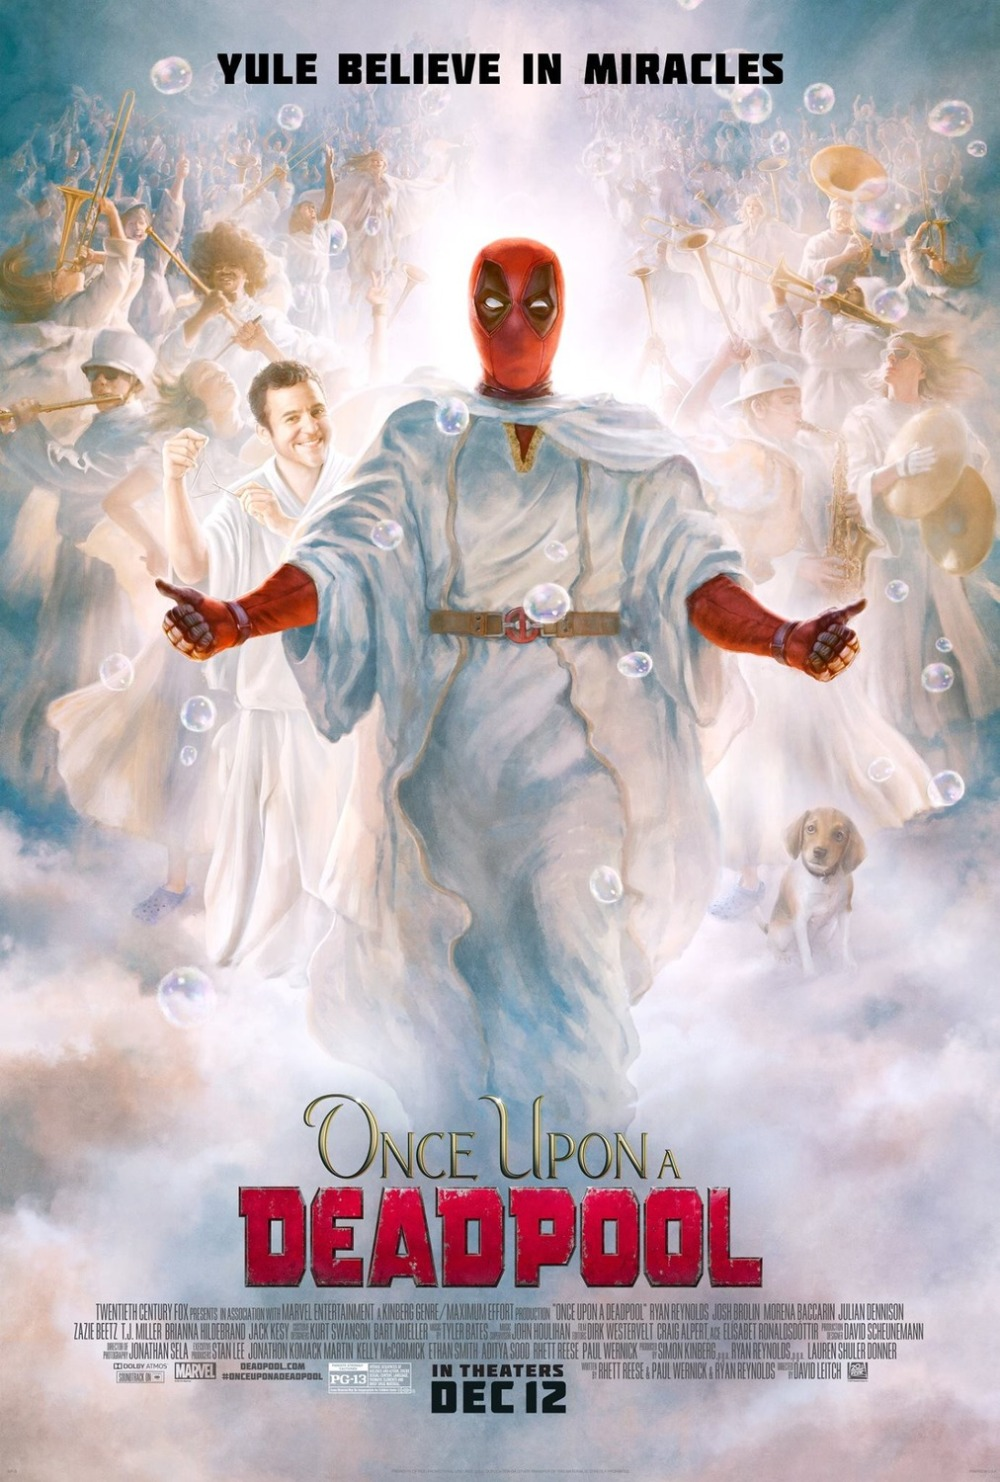 Once Upon a Deadpool poster